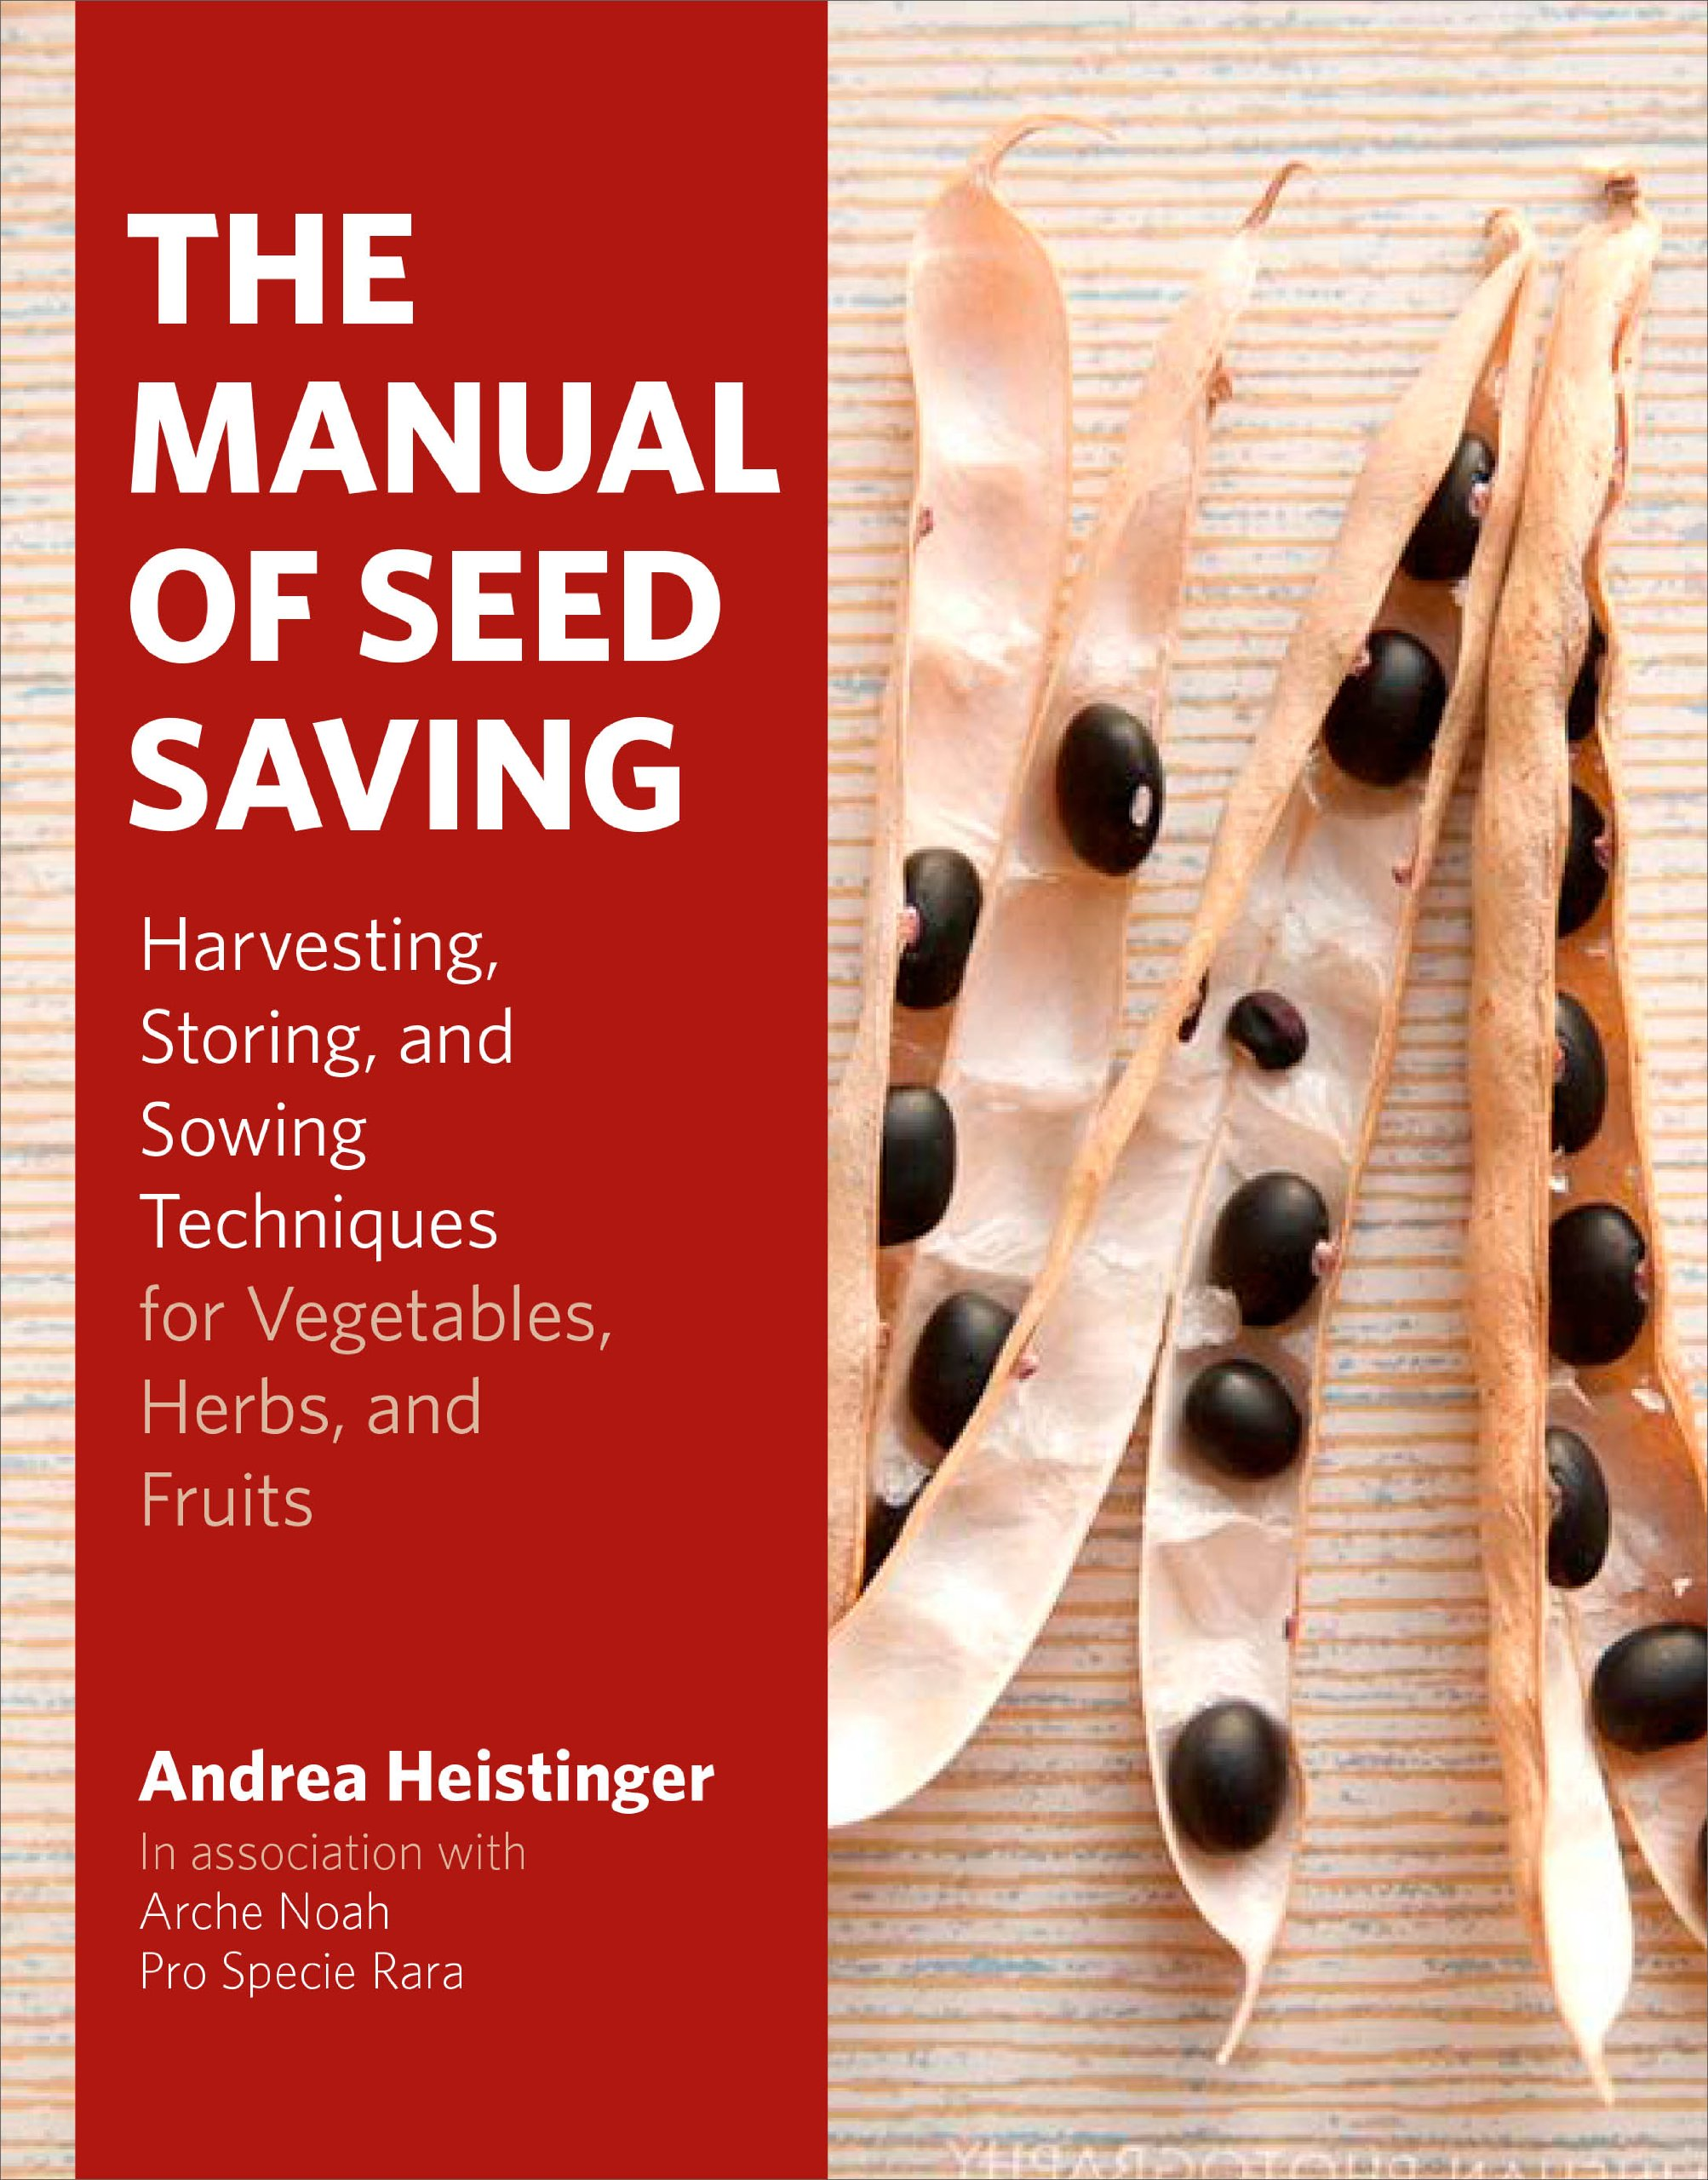 The Manual of Seed Saving: Harvesting, Storing, and Sowing Techniques for Vegetables, Herbs, and Fruits by Timber Press